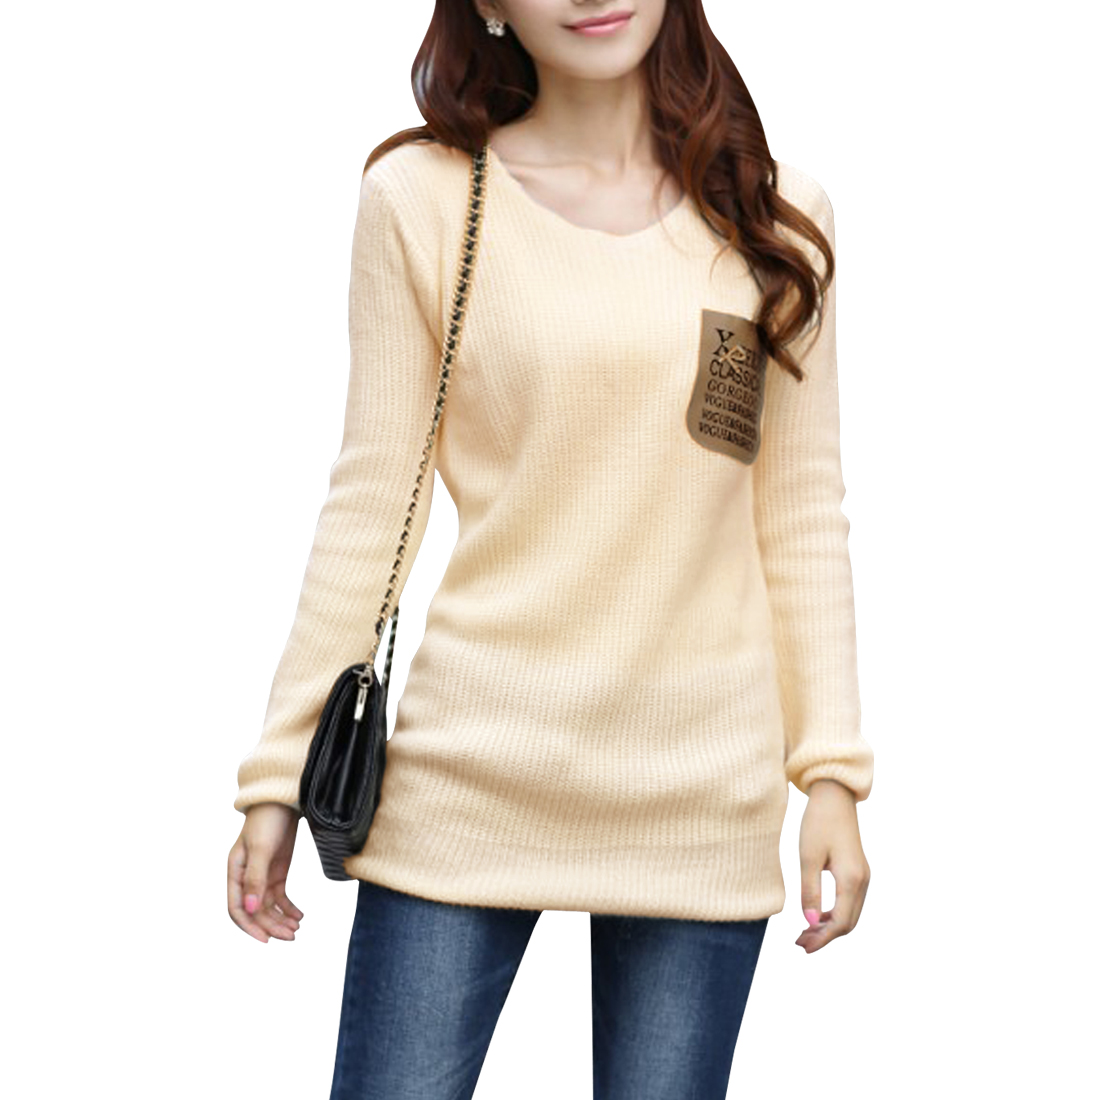 Pullover Beige Color Stretchy Soft Tunic Sweater for Lady S